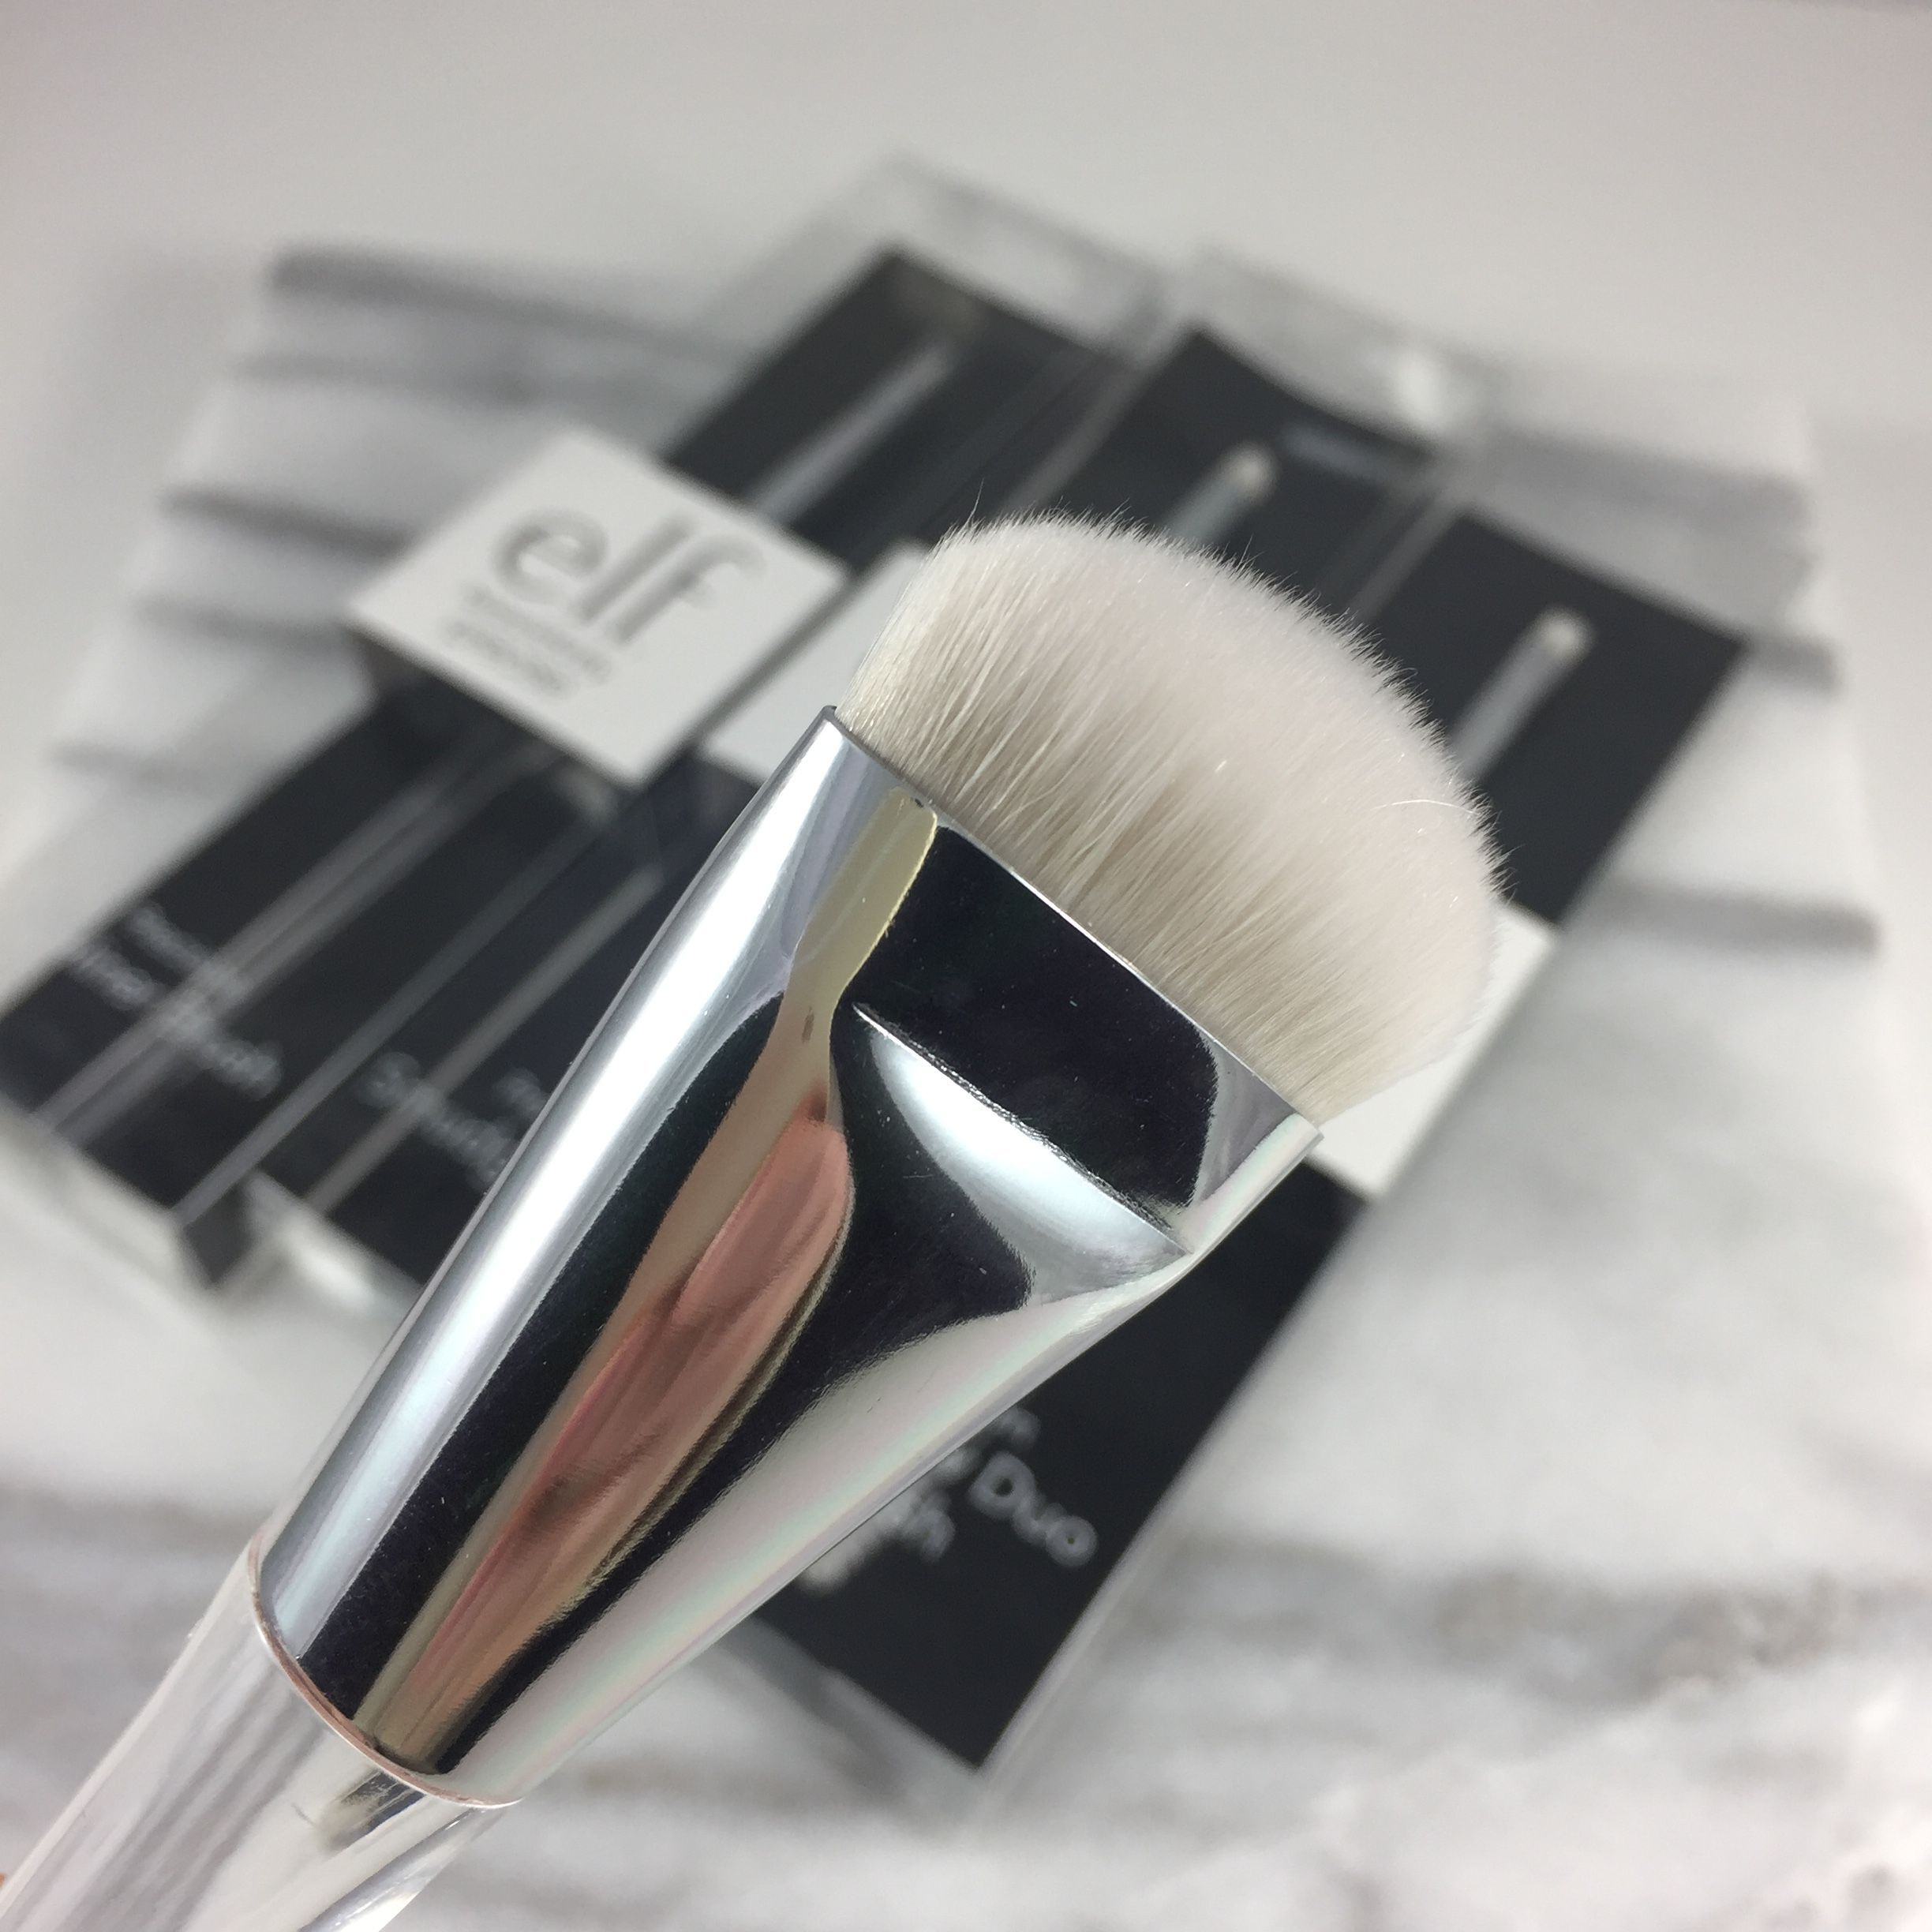 NEW ELF SCULPTING BRUSH • Available at Target